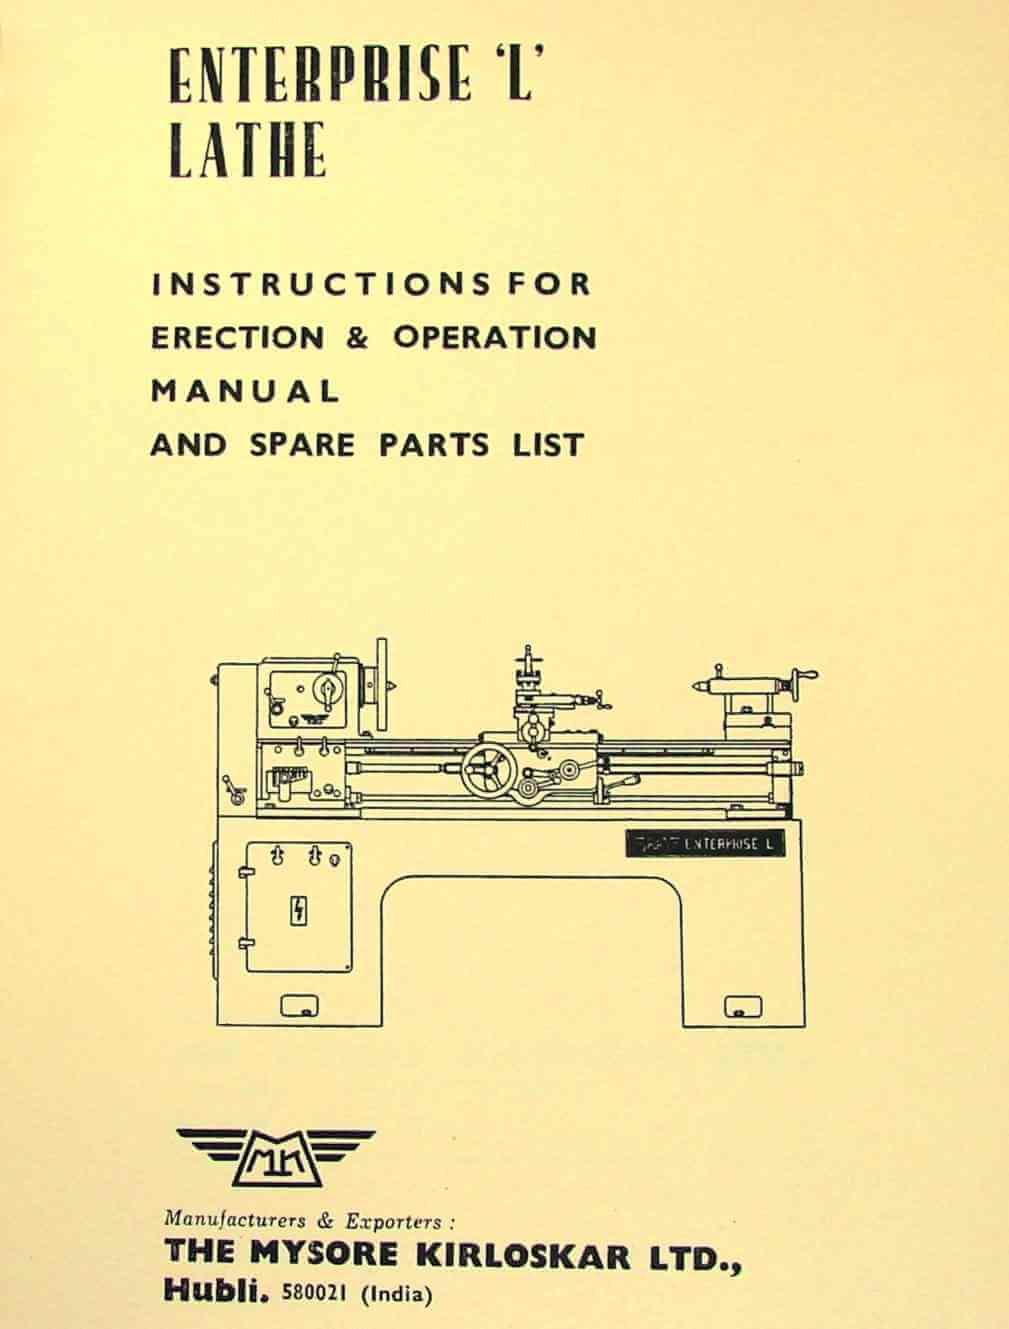 Mysore Kirloskar L1 L2 Enterprise 15 quot Lathe Instructions